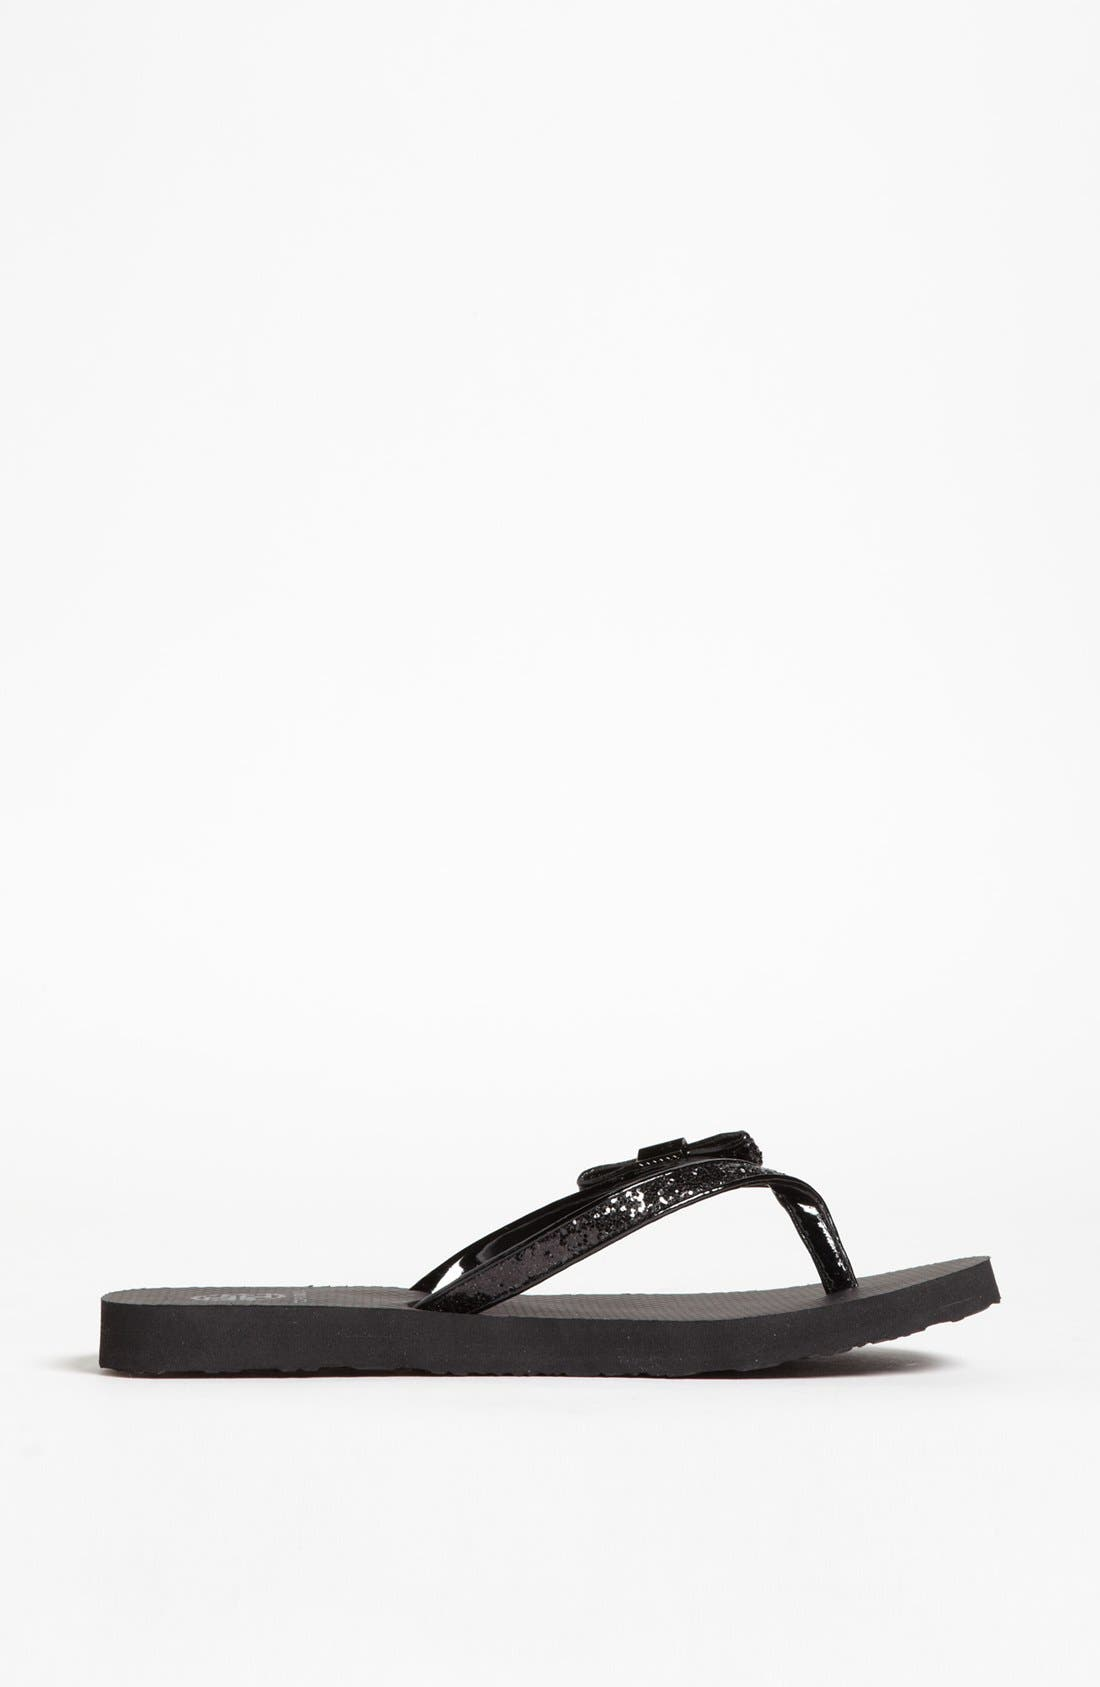 Alternate Image 3  - Tory Burch 'Carey' Flip Flop